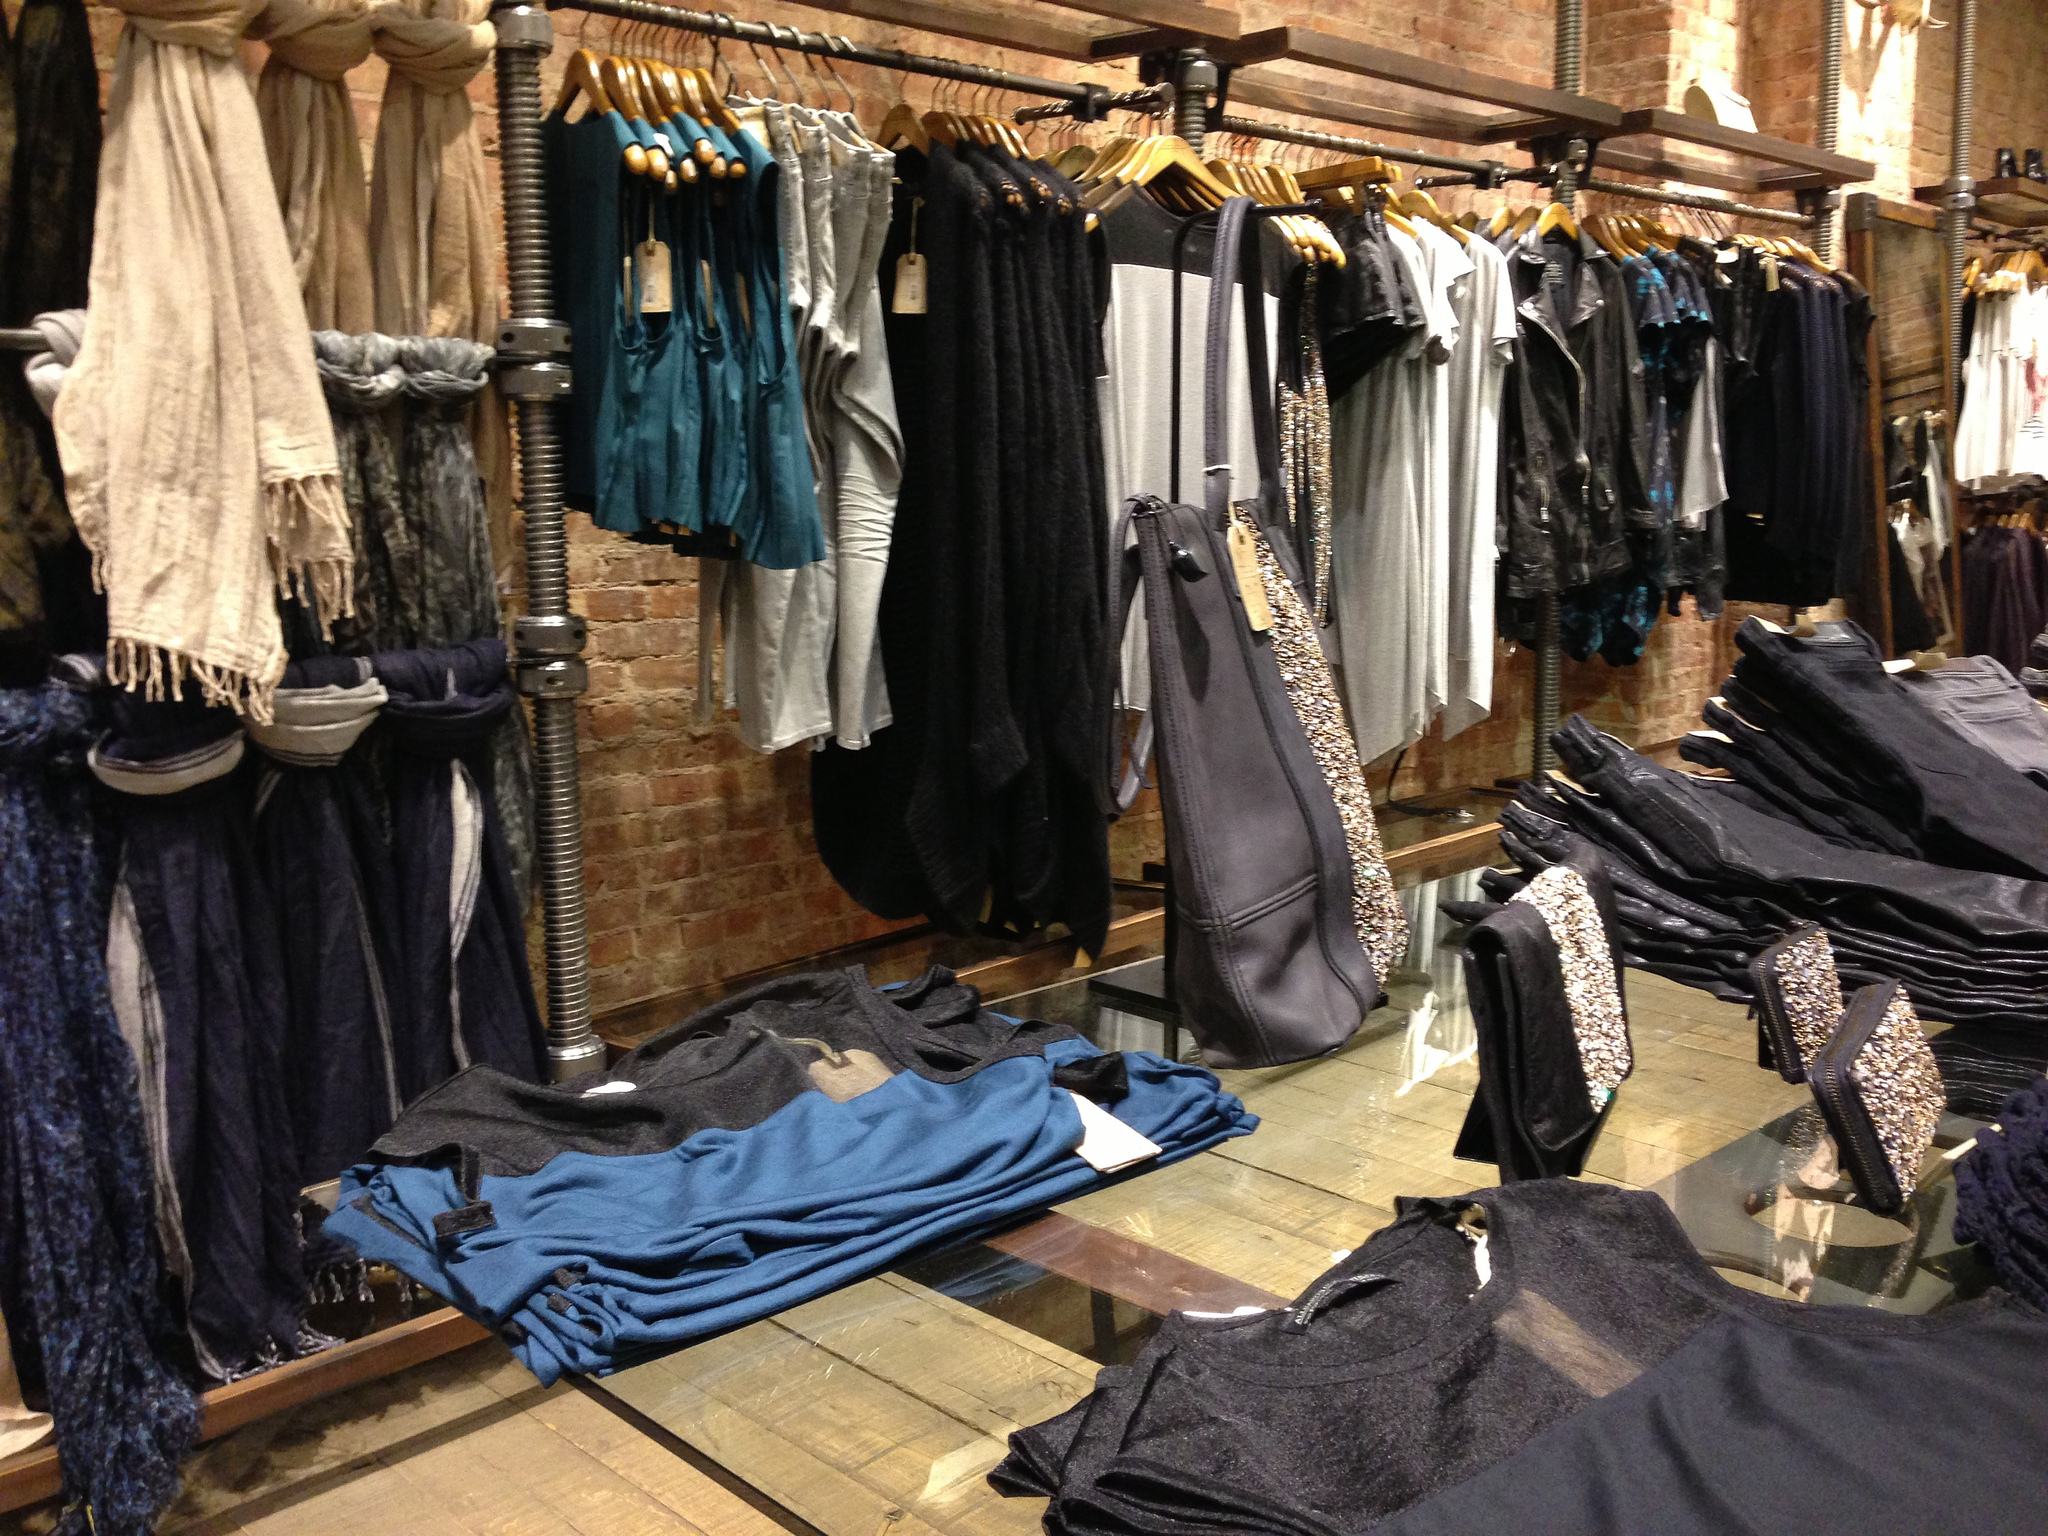 Women's fashion at AllSaints in New York. Photo by alphacityguides.